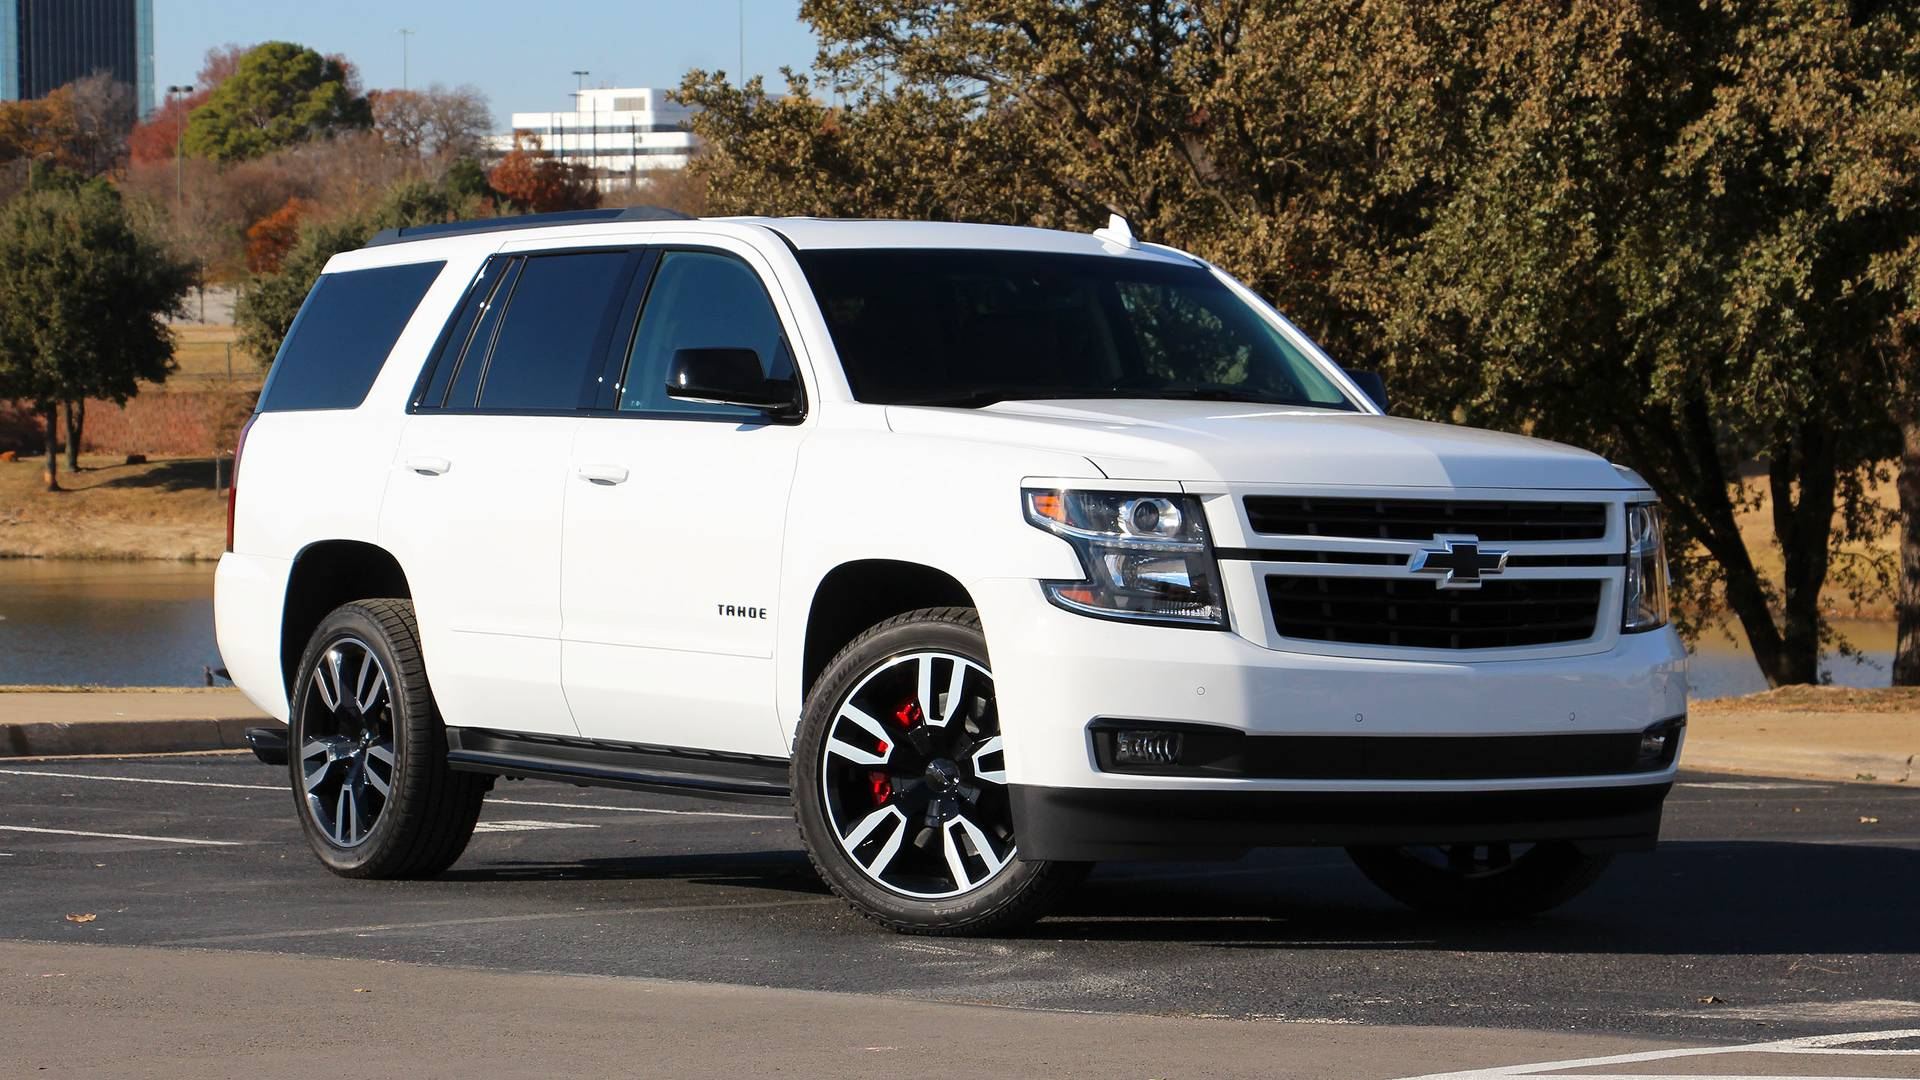 dec features technology active our content us tahoe ppv protectors en fleet media class in detail pages news safety protecting chevrolet first